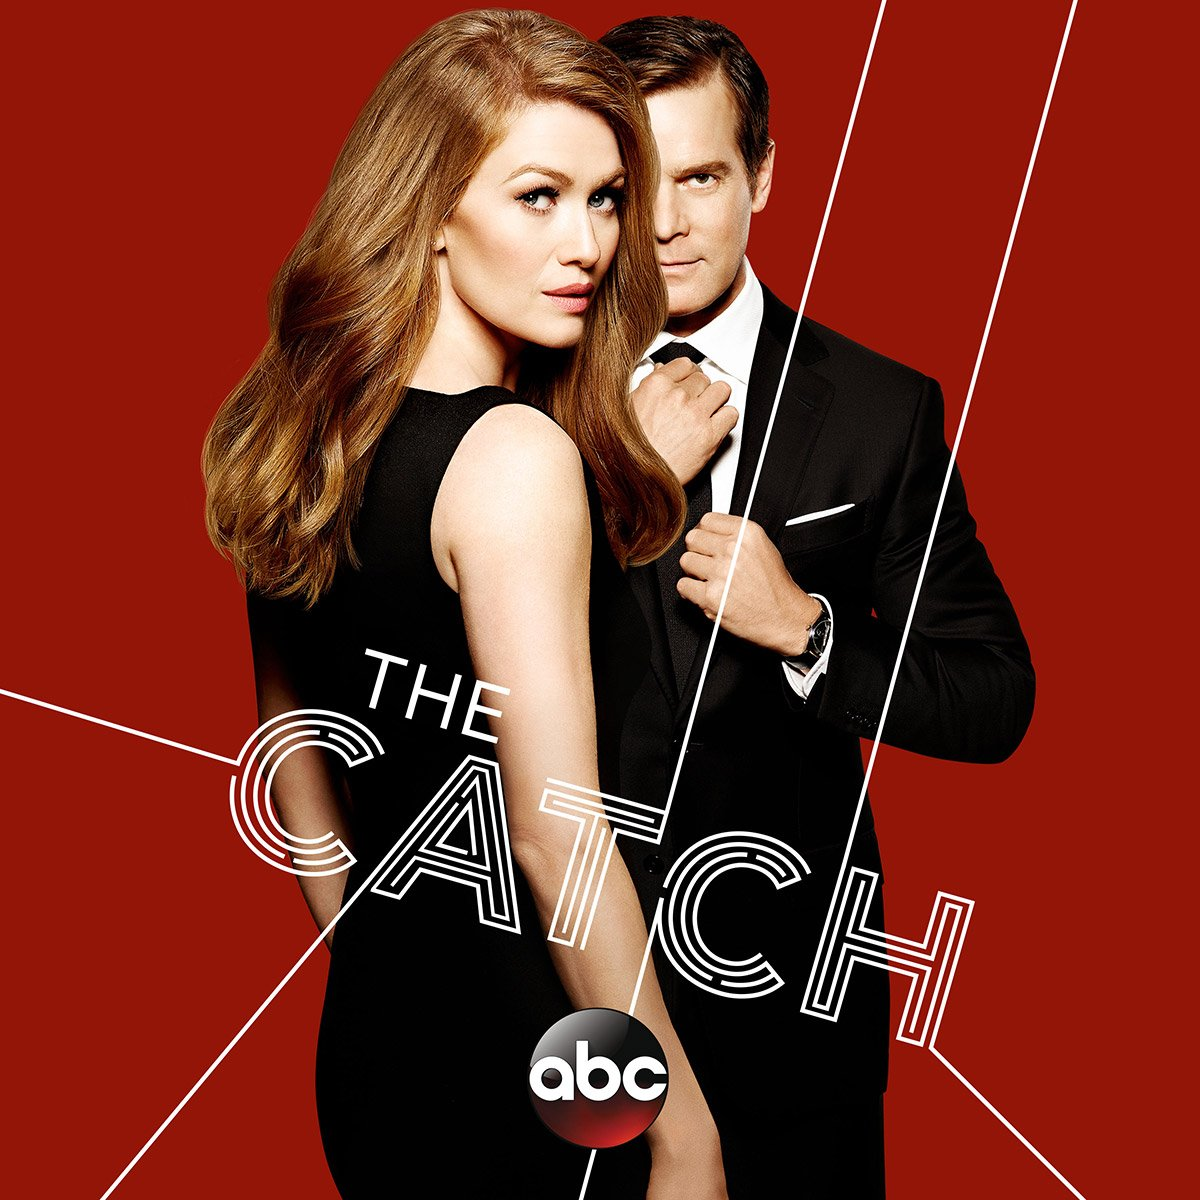 The Catch Serie